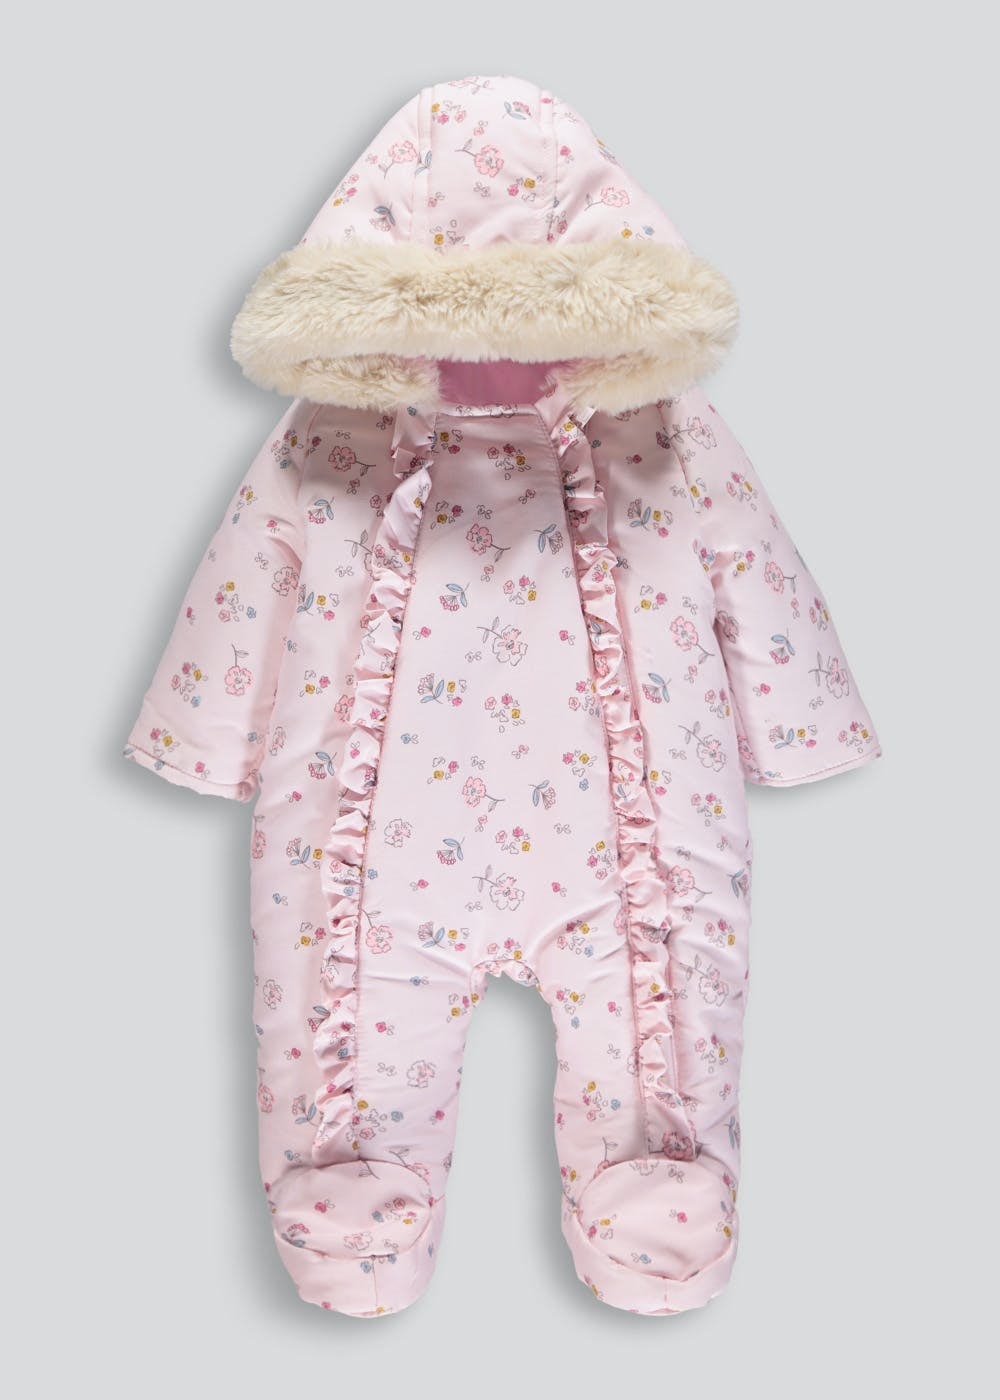 5083109ca Girls Floral Ruffle Snowsuit (Tiny Baby-18mths)